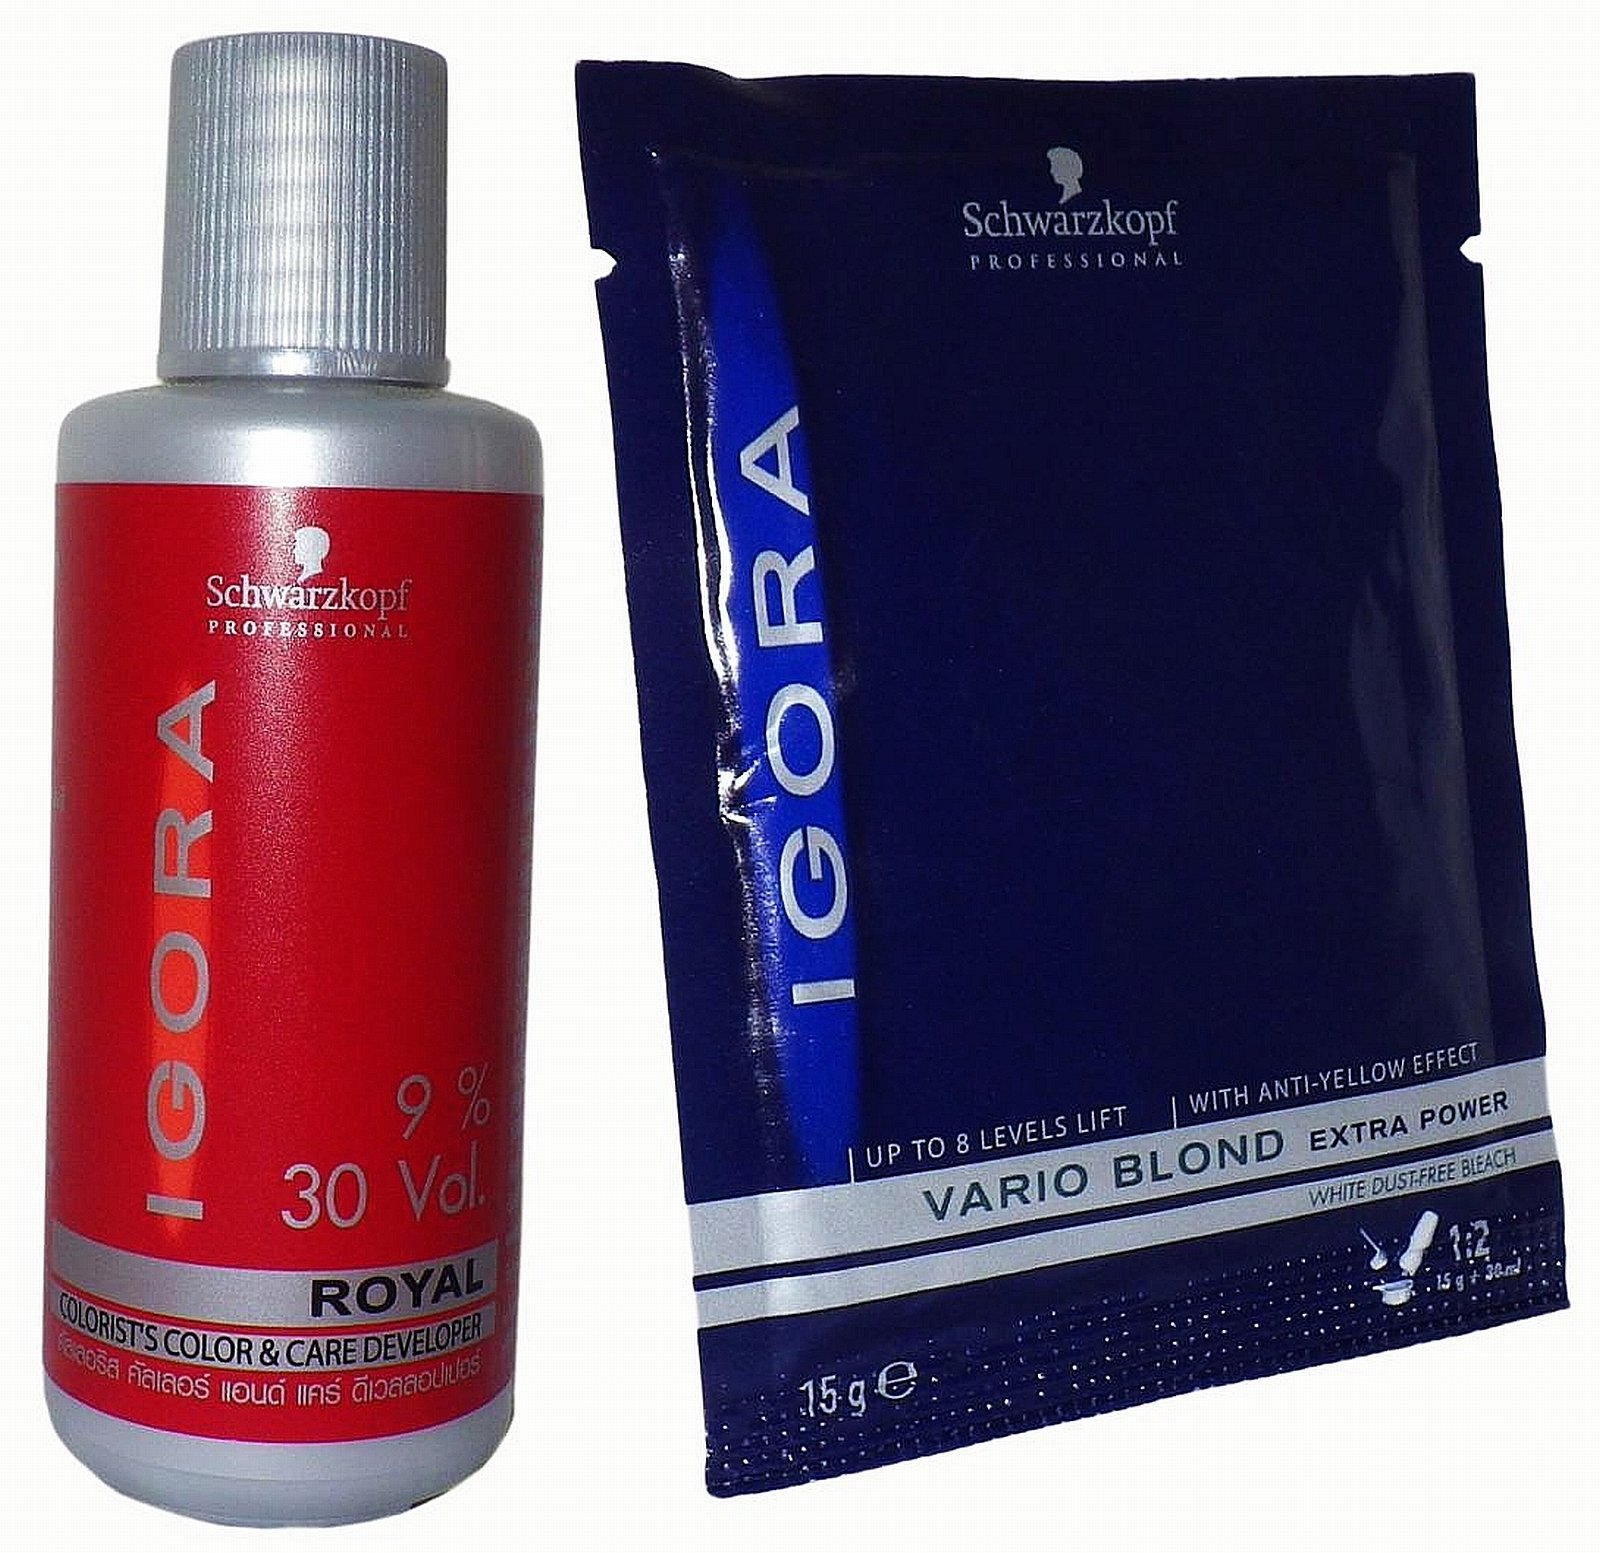 Schwarzkopf Igora Vario Hair Bleaching Powder Kit Vario Blond